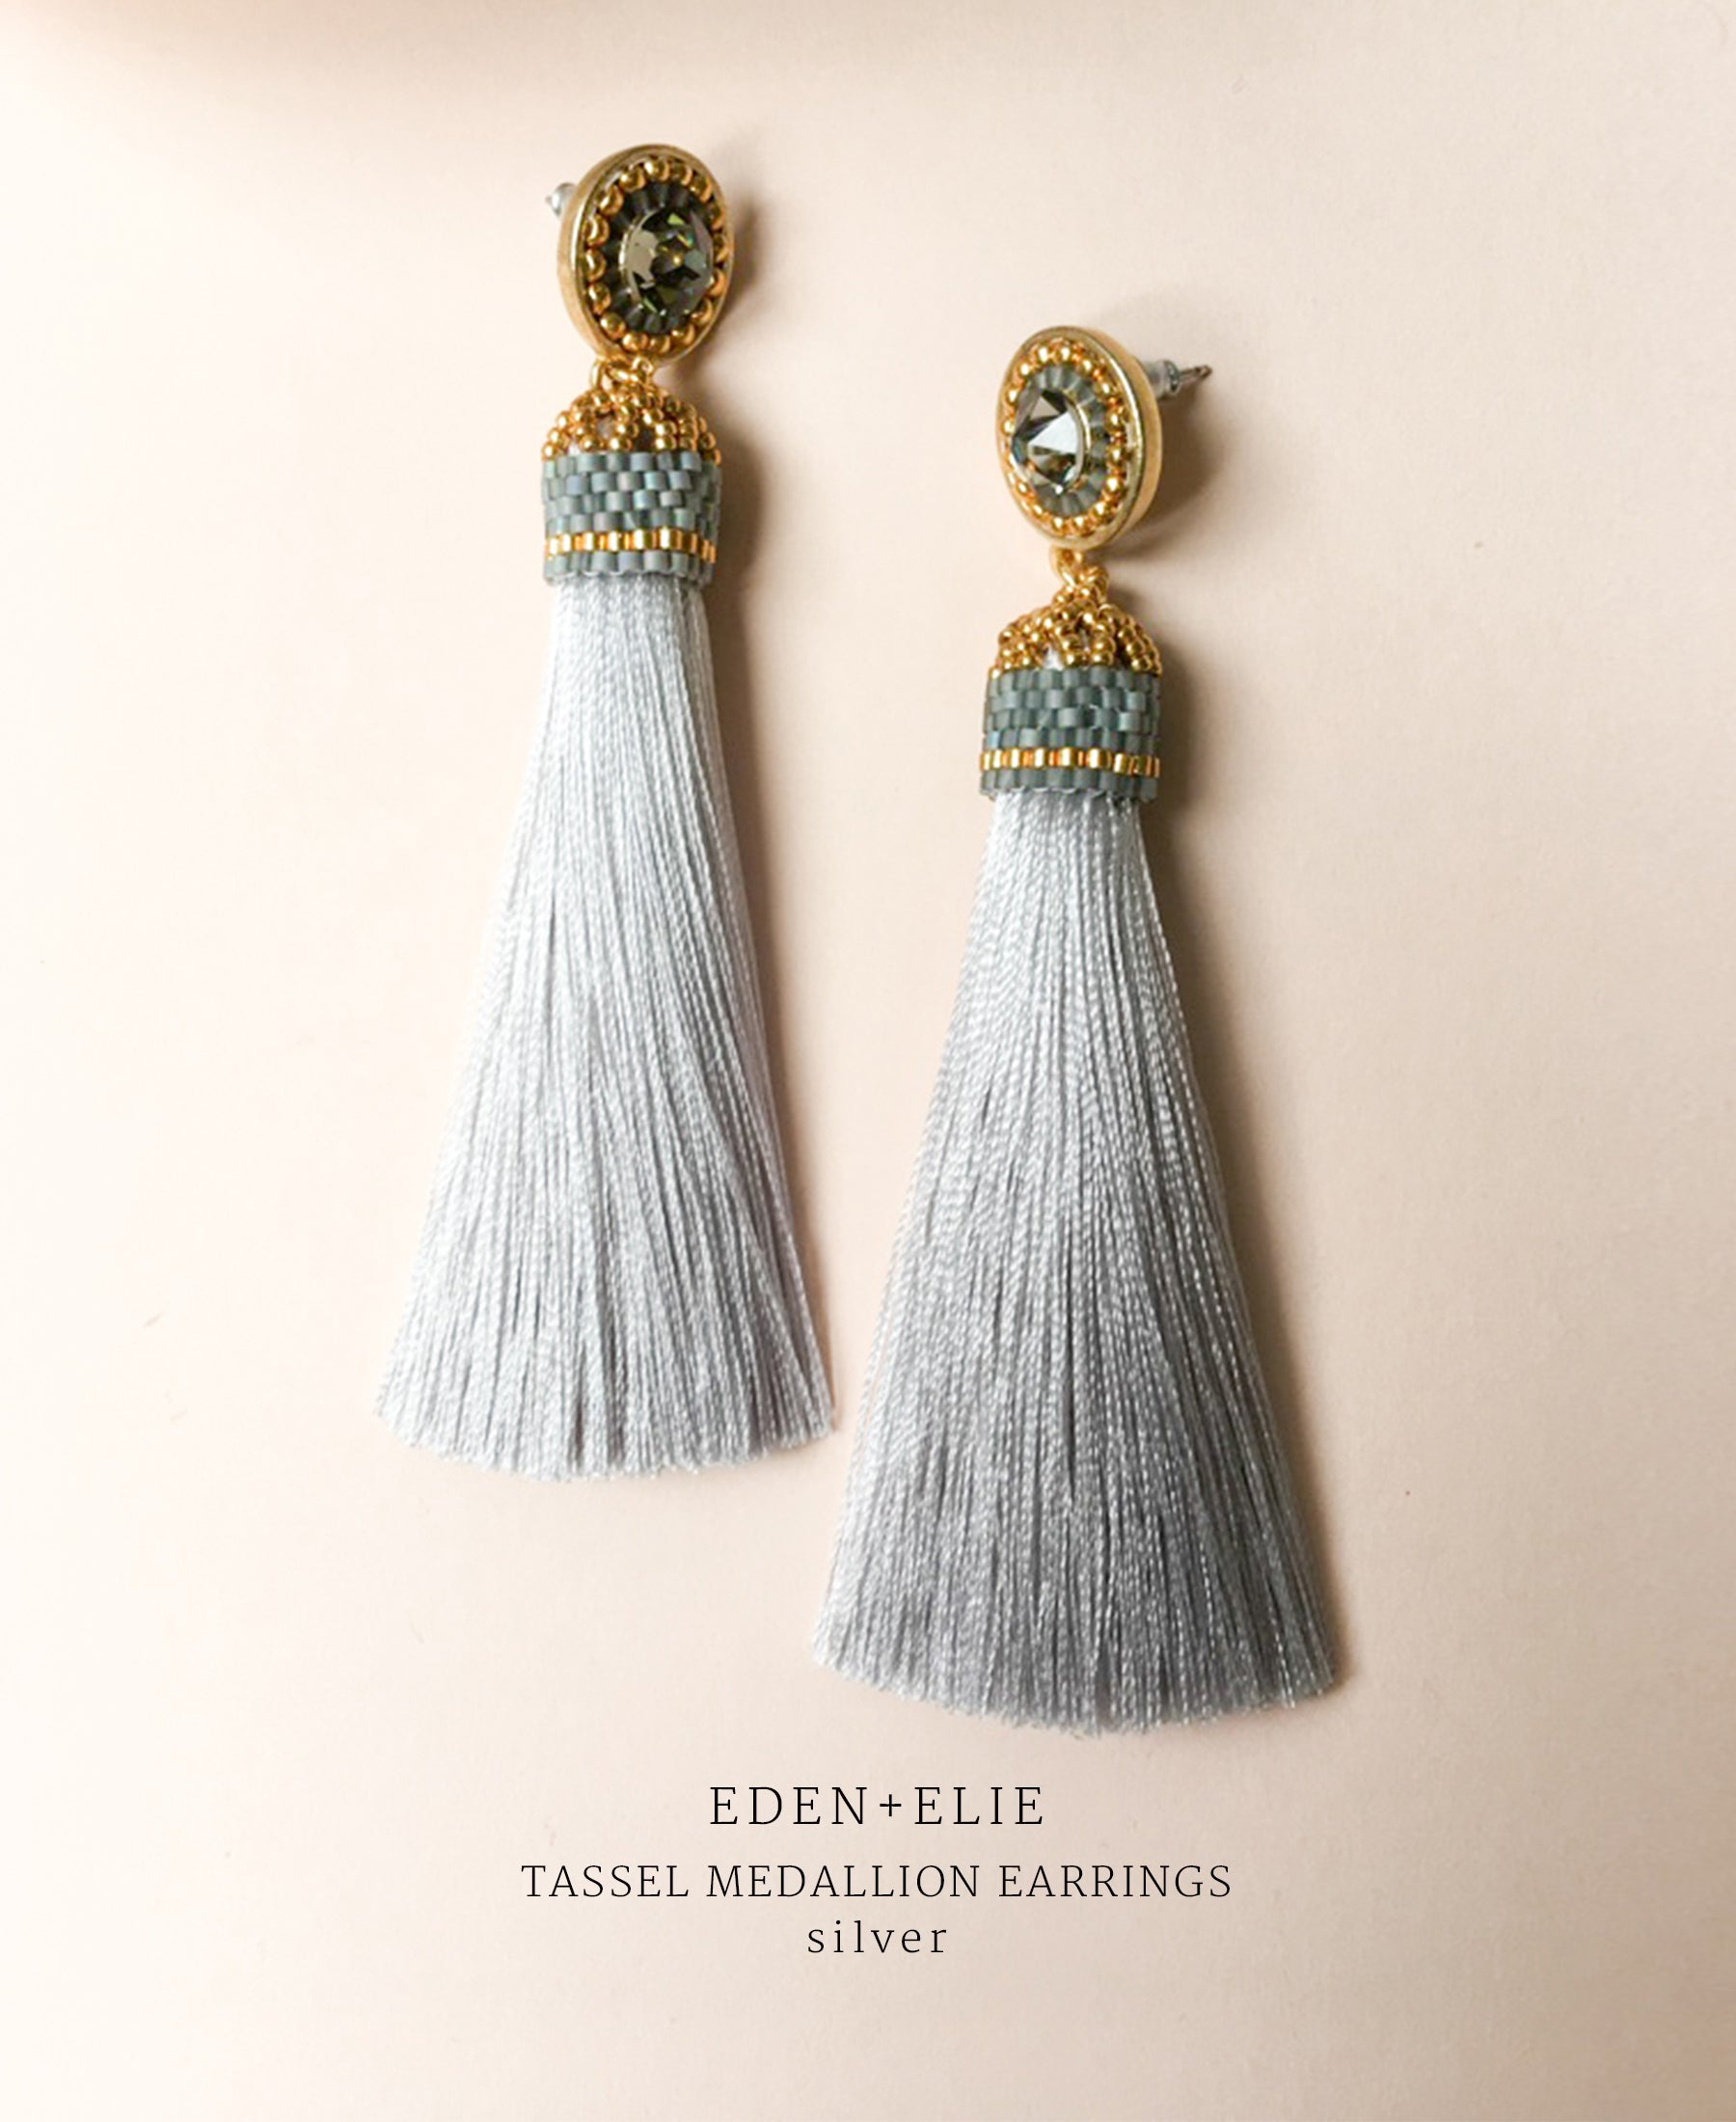 EDEN + ELIE silk tassel statement earrings - silver